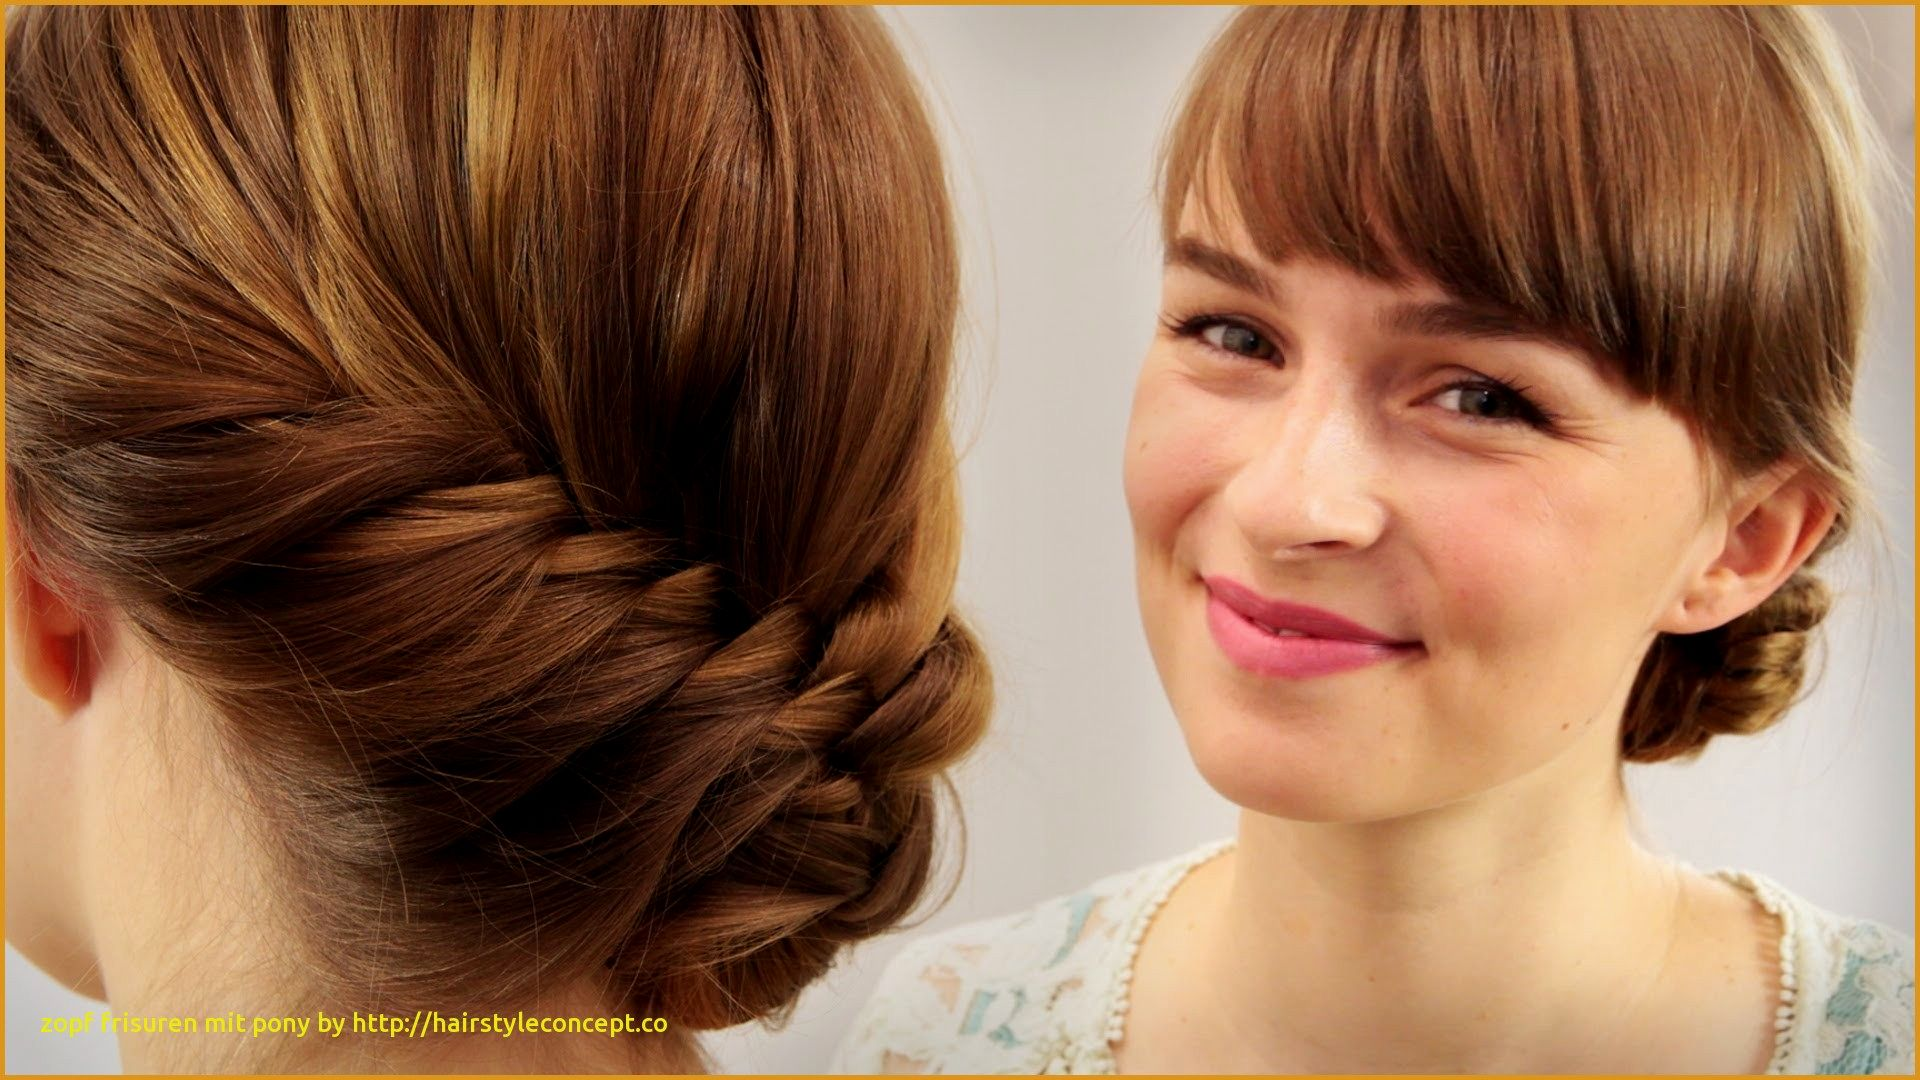 excellent braided hairstyles with pony plan-Finest braided hairstyles With pony model